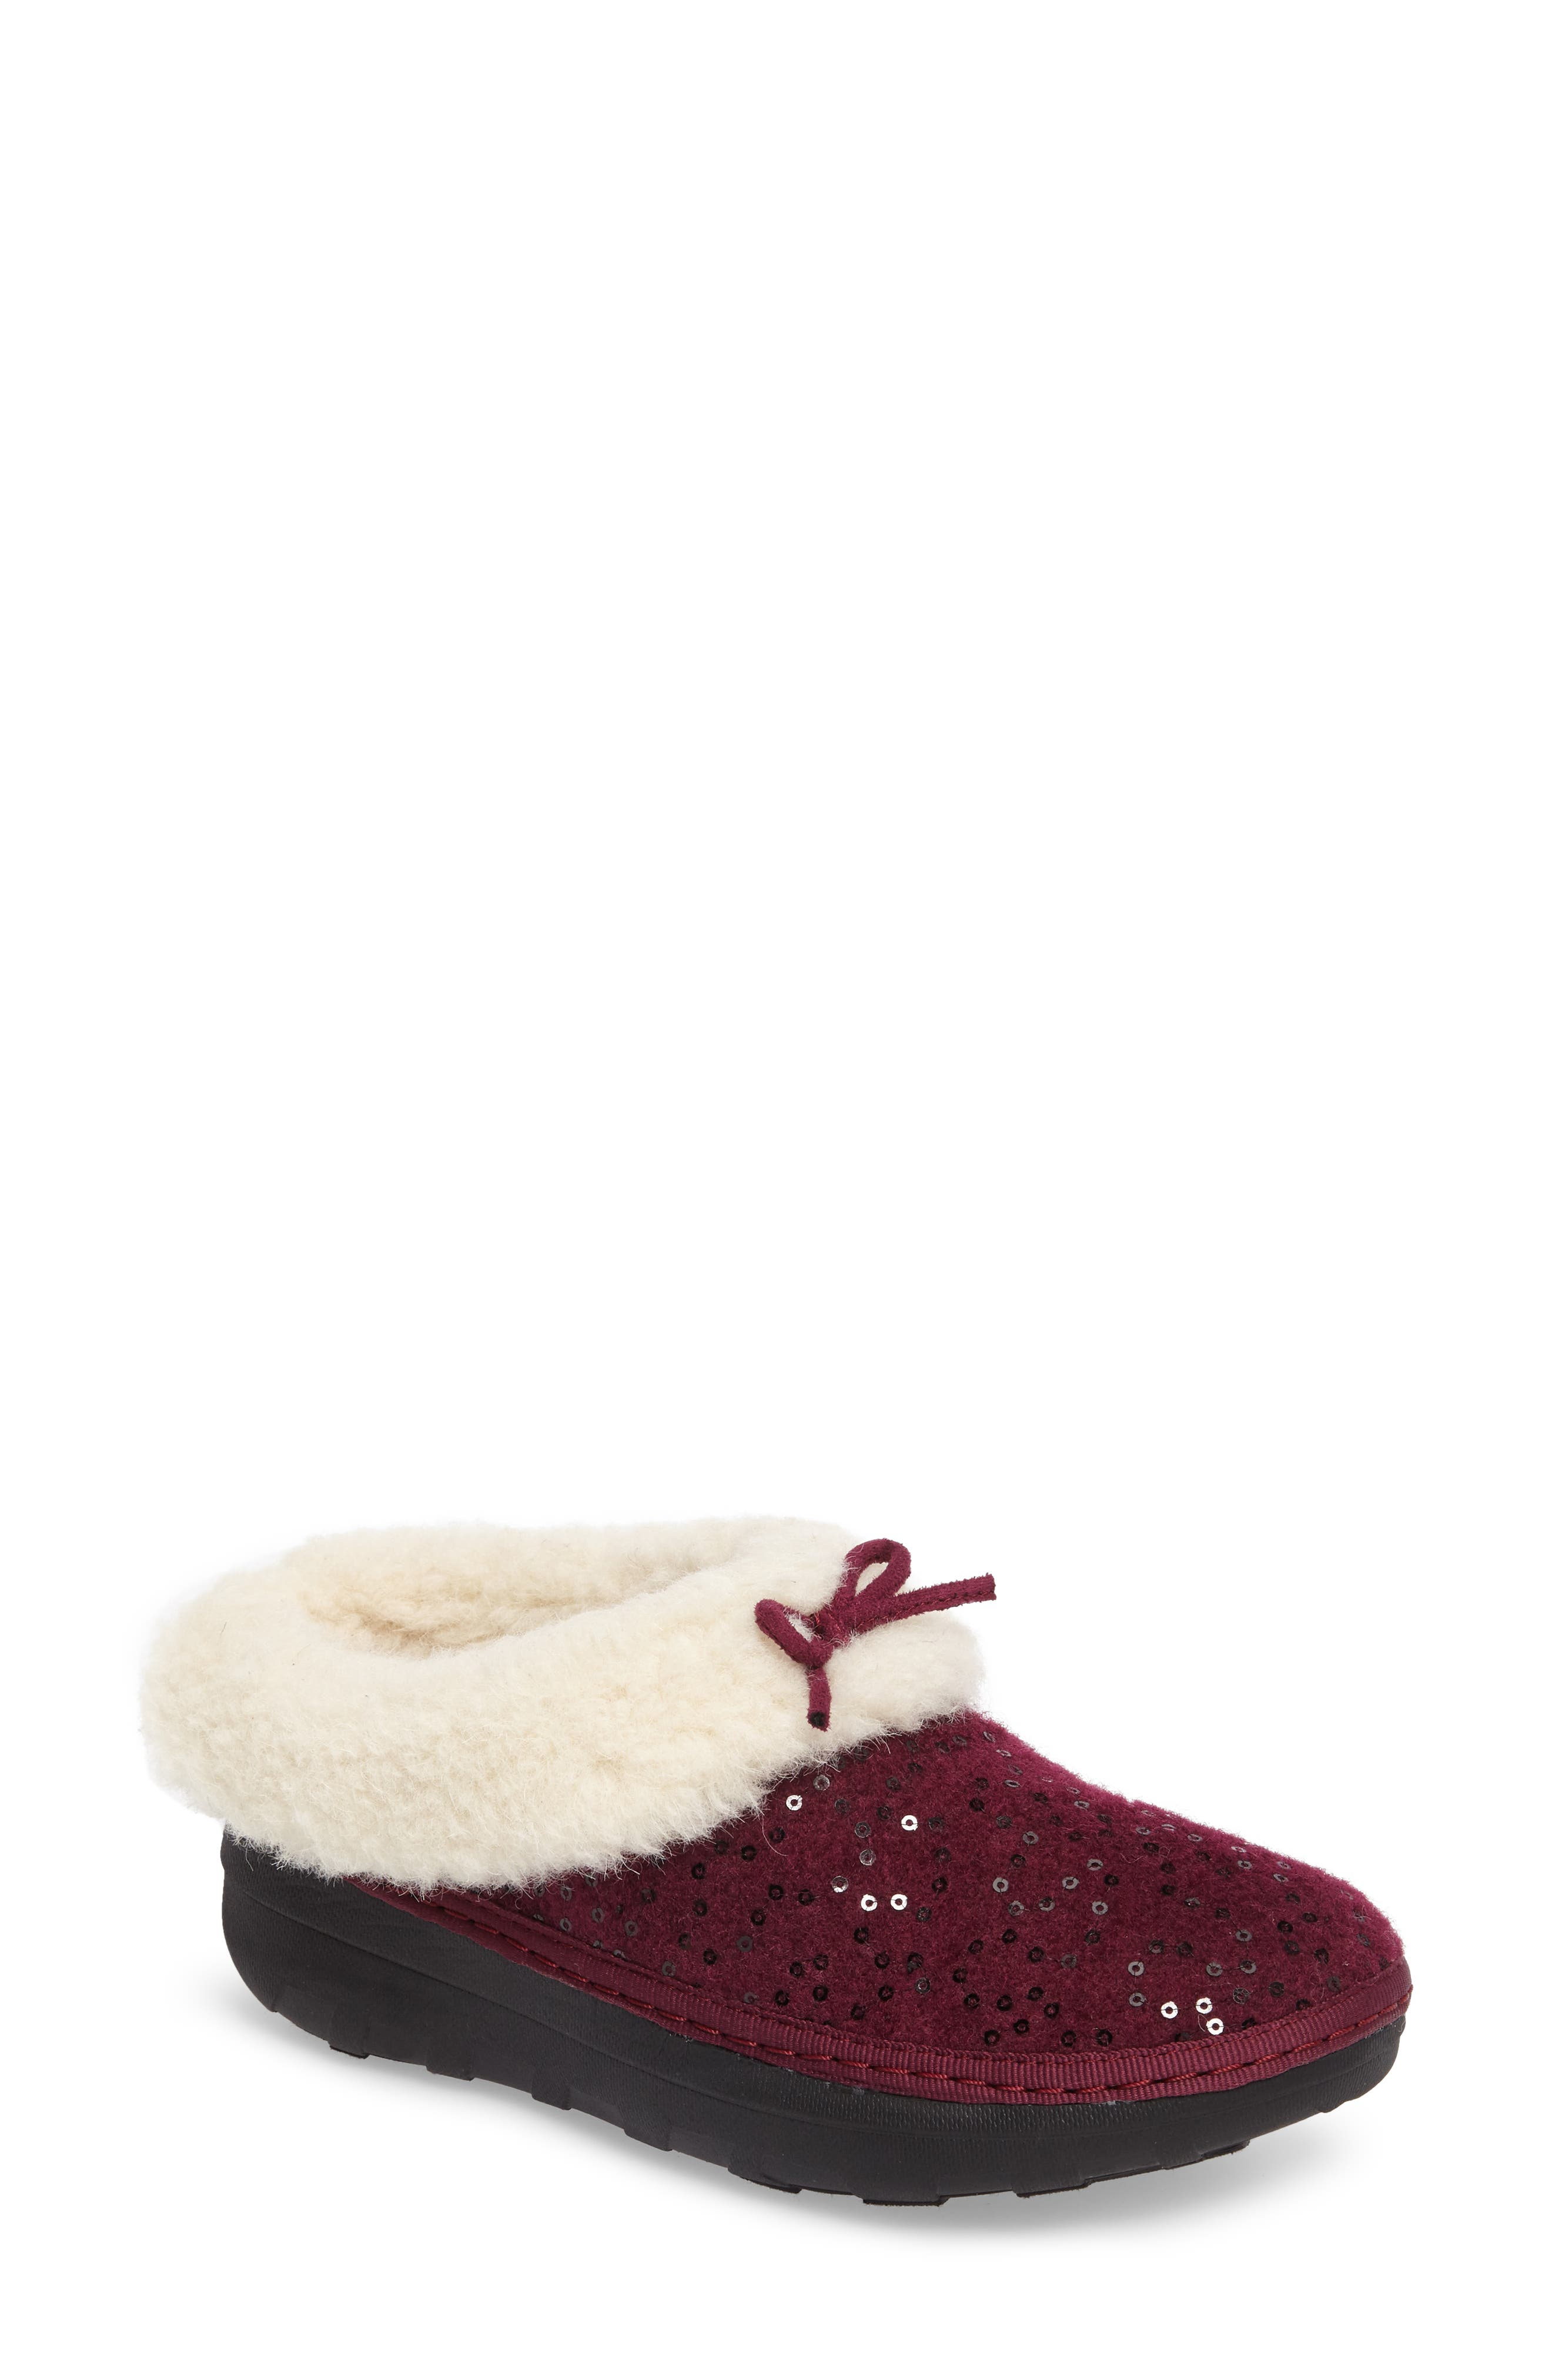 FitFlop Loaff Snug Sequin Slipper (Women)